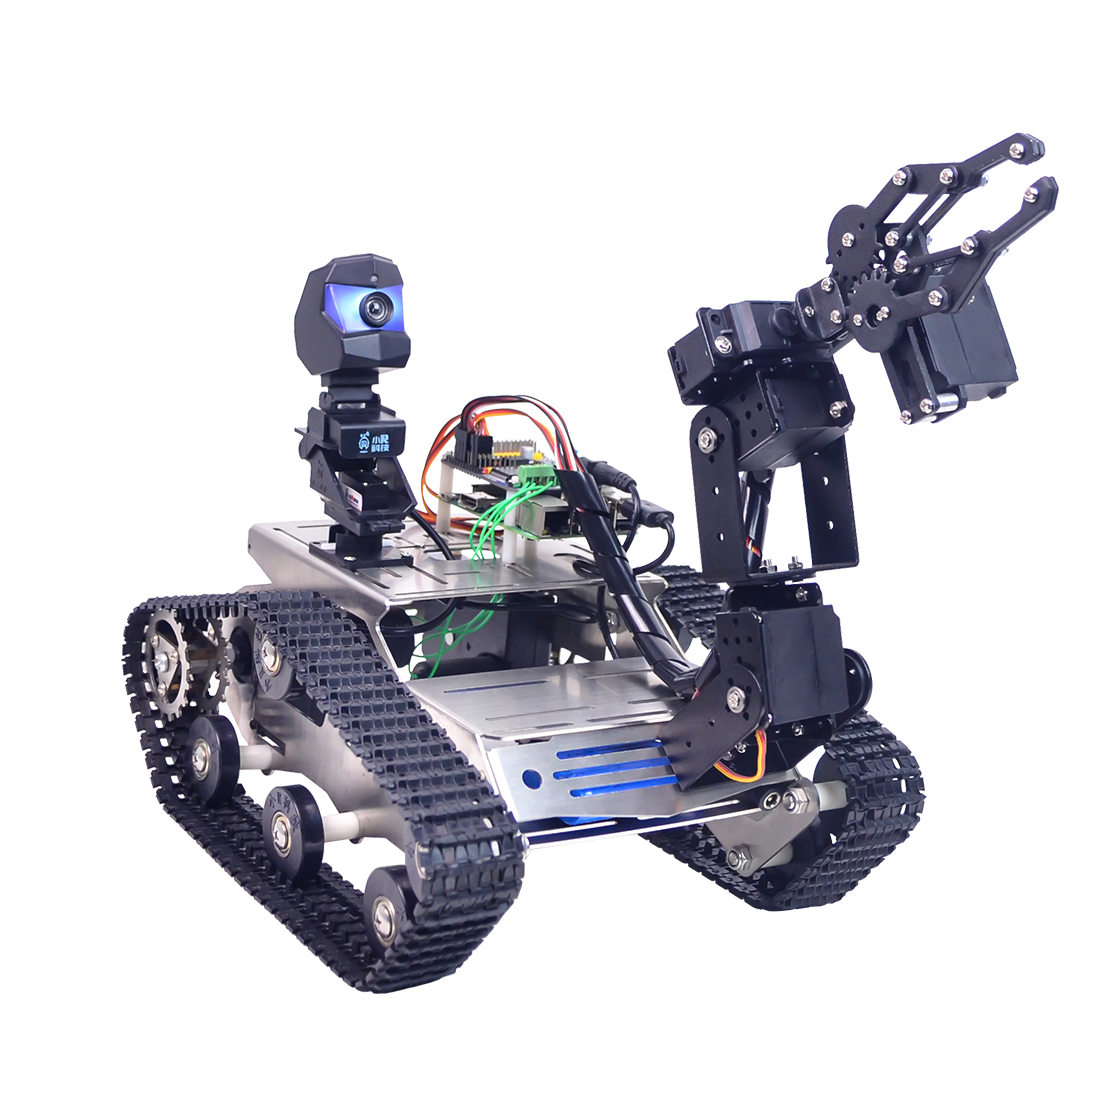 Programmable TH WiFi FPV Tank Robot Car Kit With Arm For Raspberry Pi 3B-Line Patrol Obstacle Avoid Version Small Claw